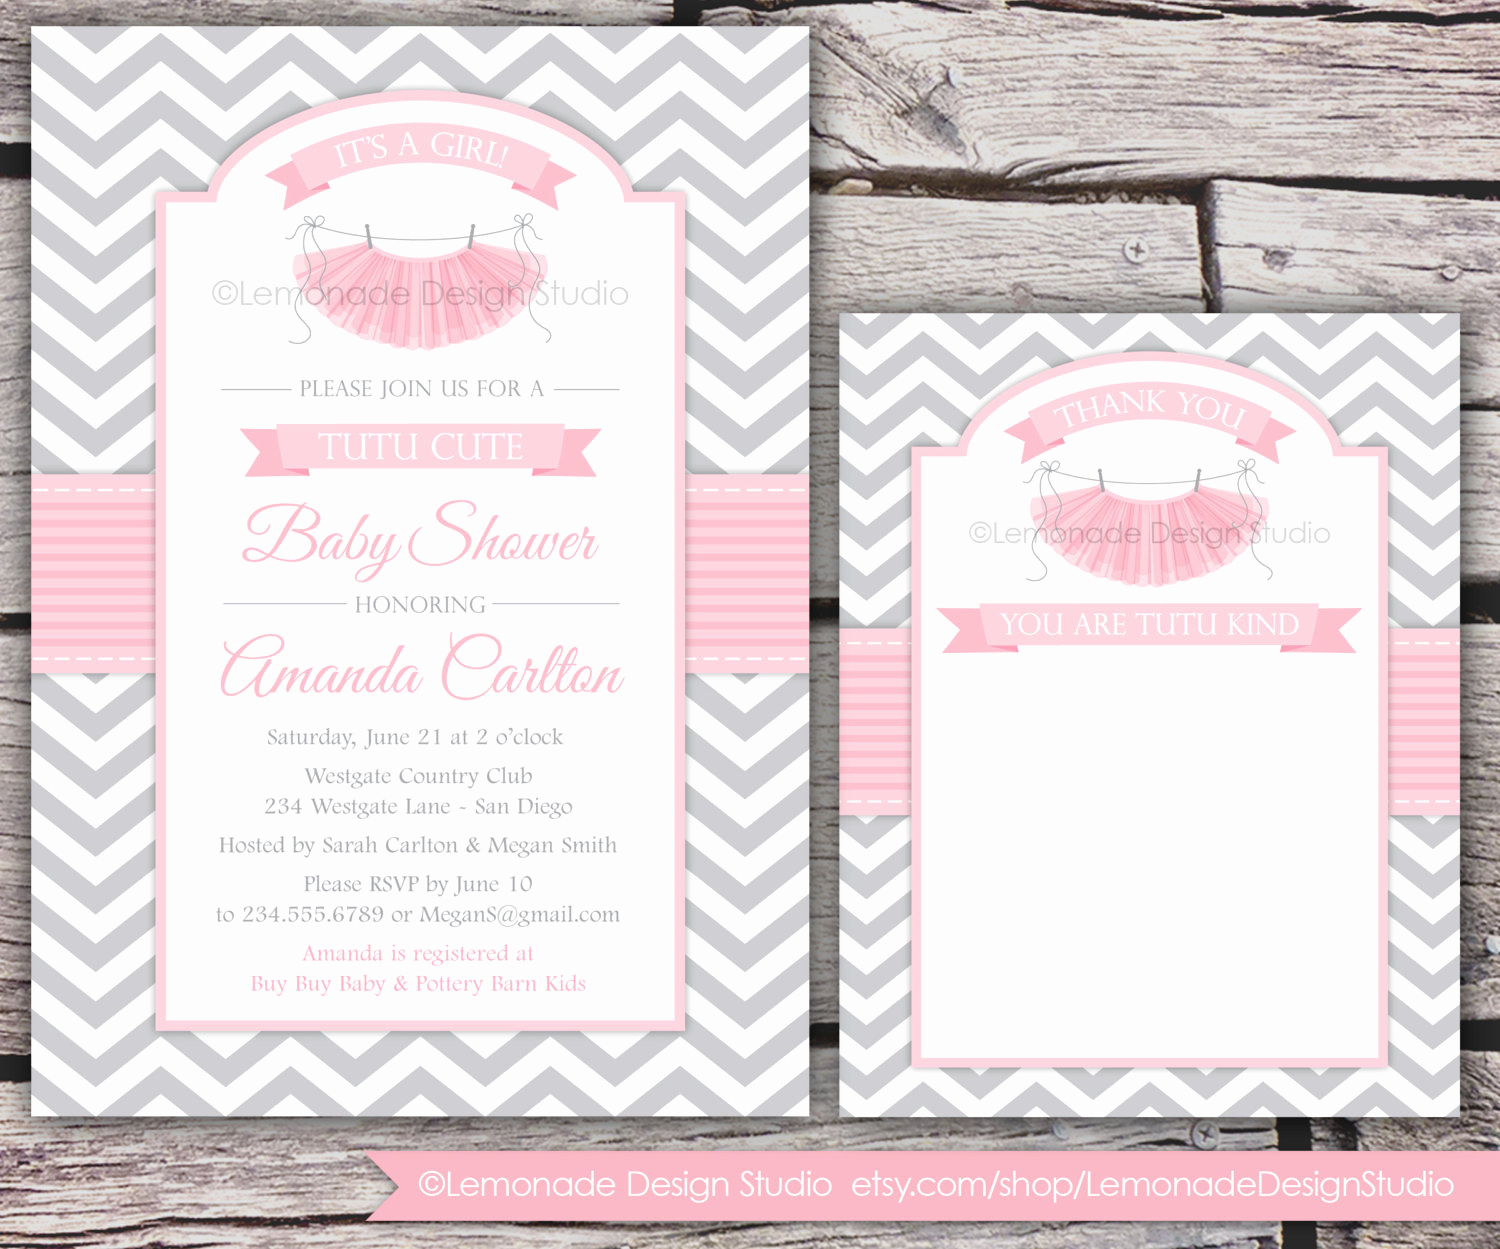 Cute Baby Shower Invitation Wording Unique Tutu Cute Baby Shower Invitation and Thank You Card Chevron